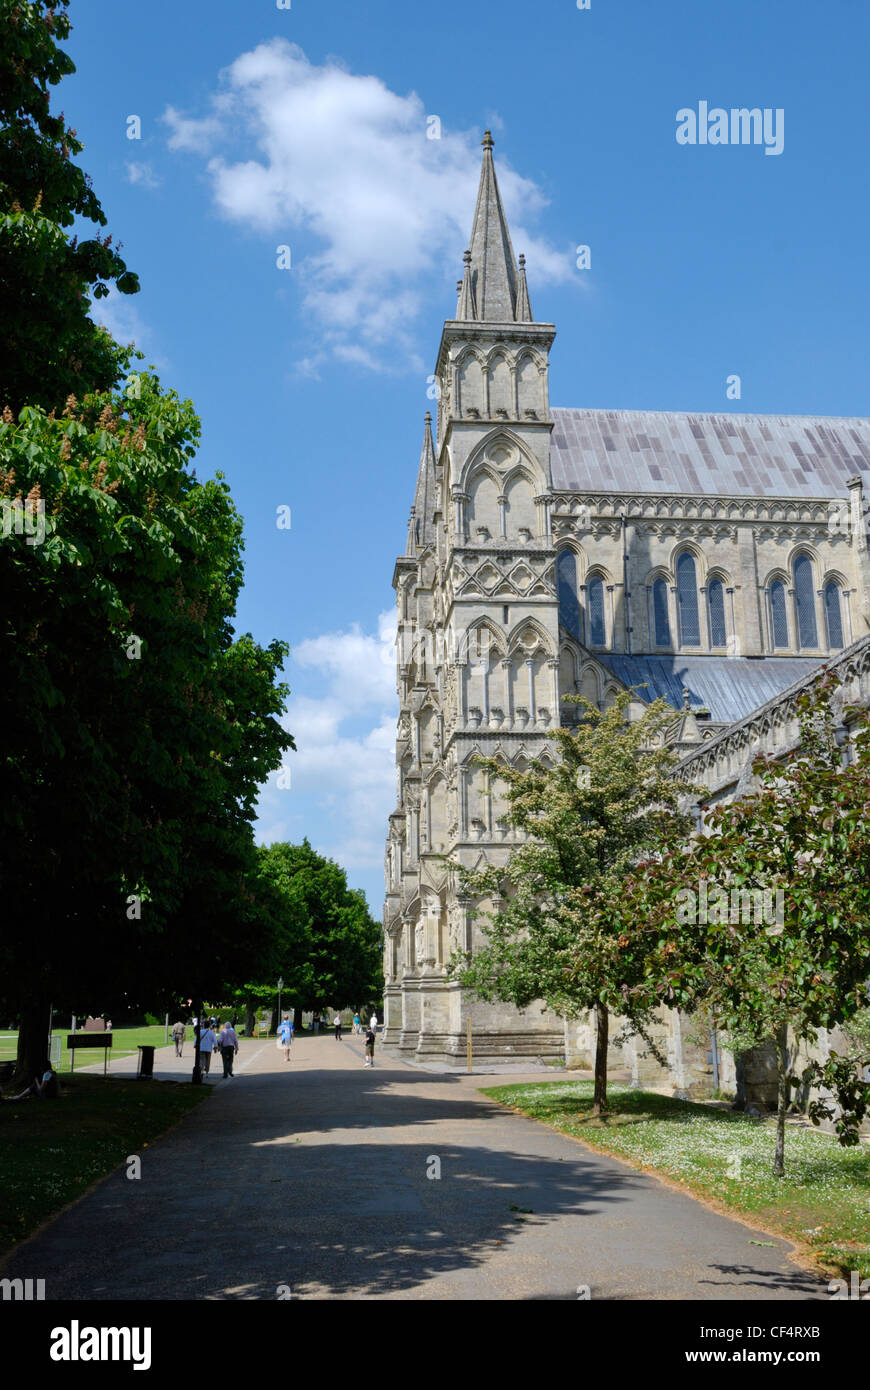 Salisbury Cathedral, one of the finest medieval cathedrals in Britain. Stock Photo